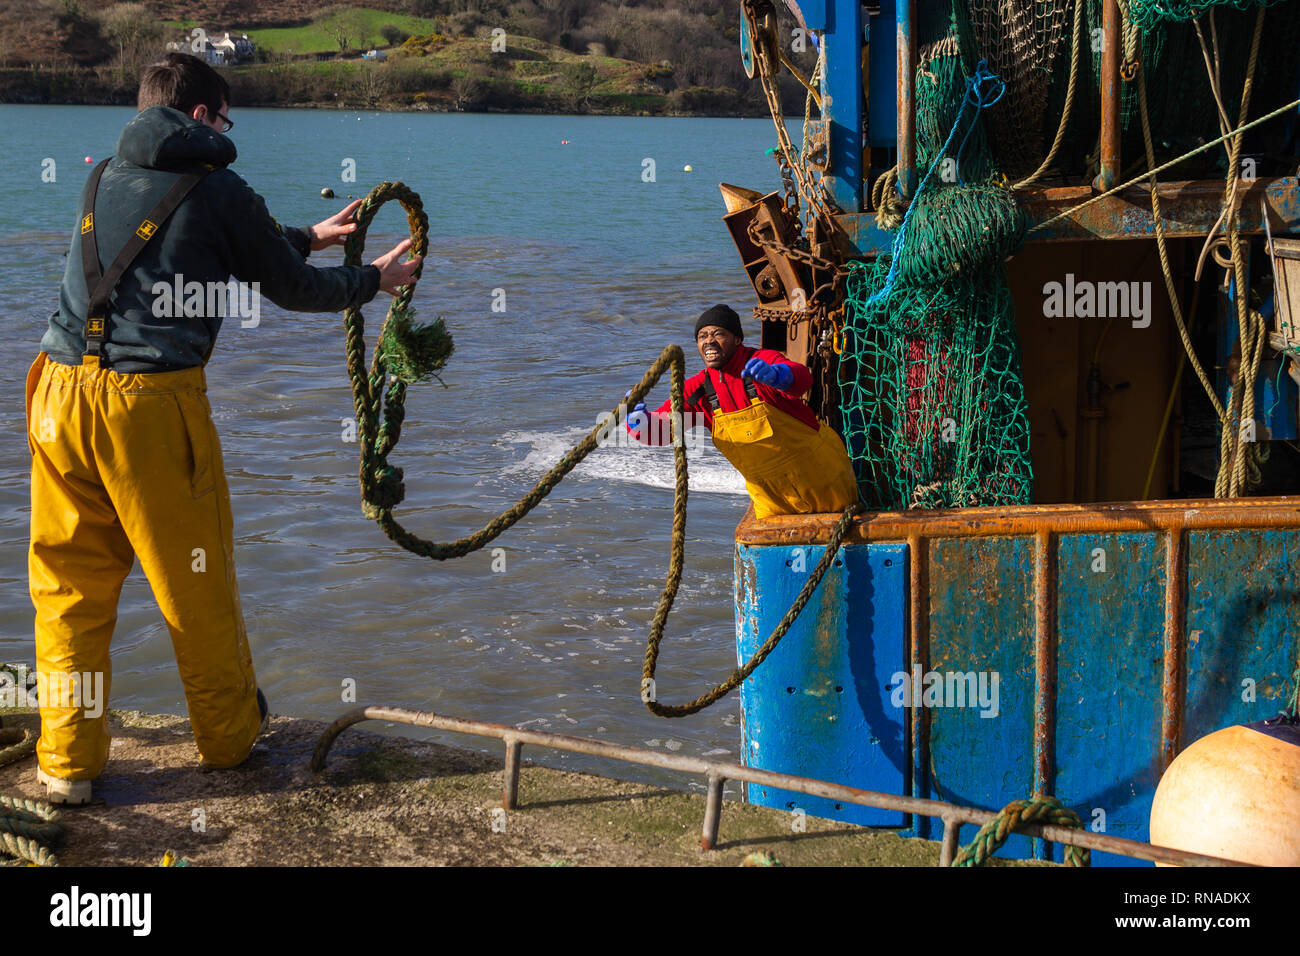 union-hall-west-cork-ireland-18th-feb-2019-trawler-ine-christina-landed-her-fine-catch-of-prawns-coming-alongside-in-union-hall-ahead-of-the-bad-weather-forecast-to-come-this-load-of-7-tons-was-landed-and-in-a-refrigerated-lorry-in-minutes-much-of-it-bound-for-the-continent-credit-aphperspectivealamy-live-news-RNADKX.jpg